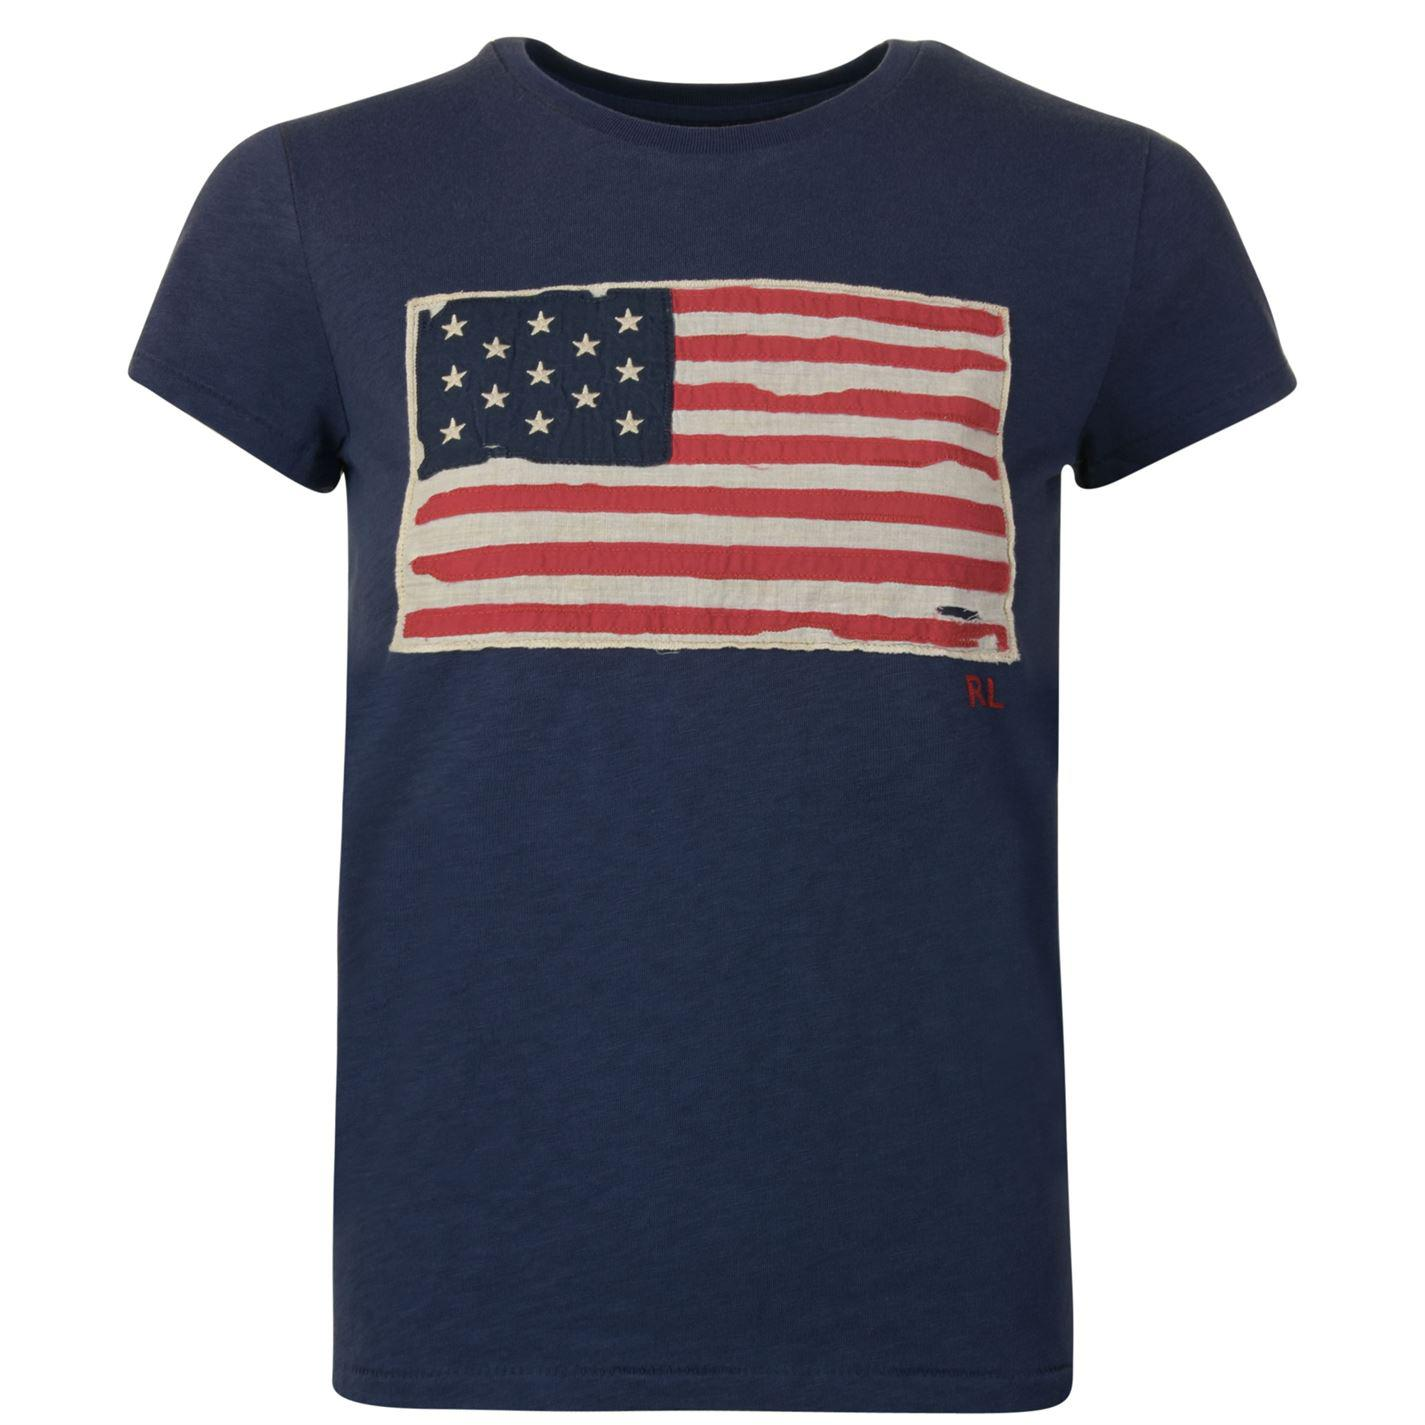 d1ce53d3e Lyst - Polo Ralph Lauren Blue T-shirt With American Flag Patch in ...